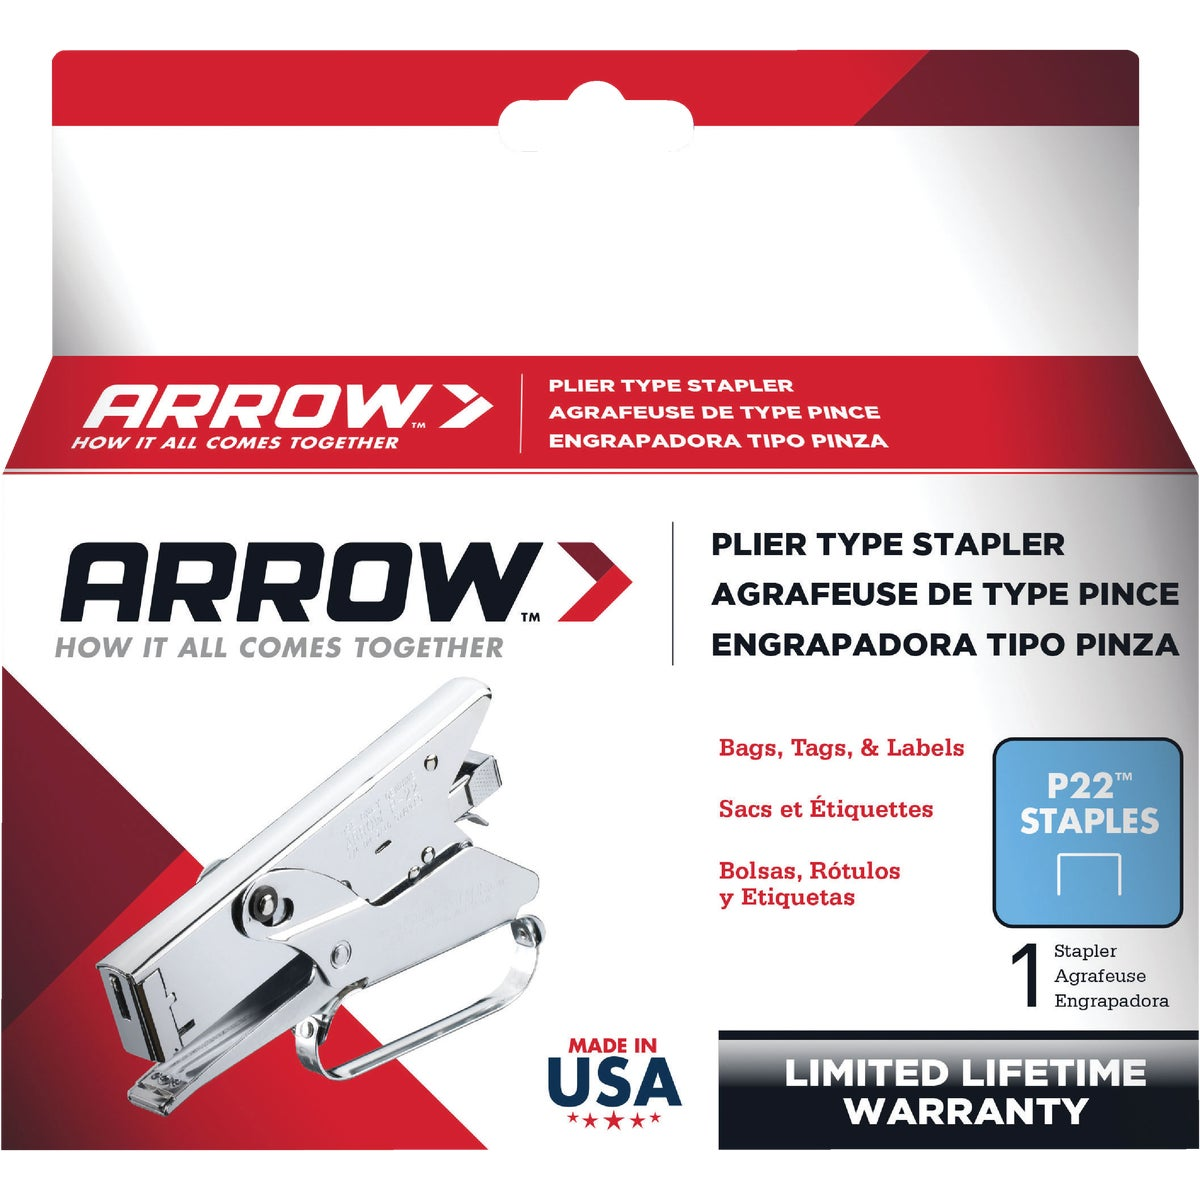 PLIER STAPLER - P22 by Arrow Fastener Co